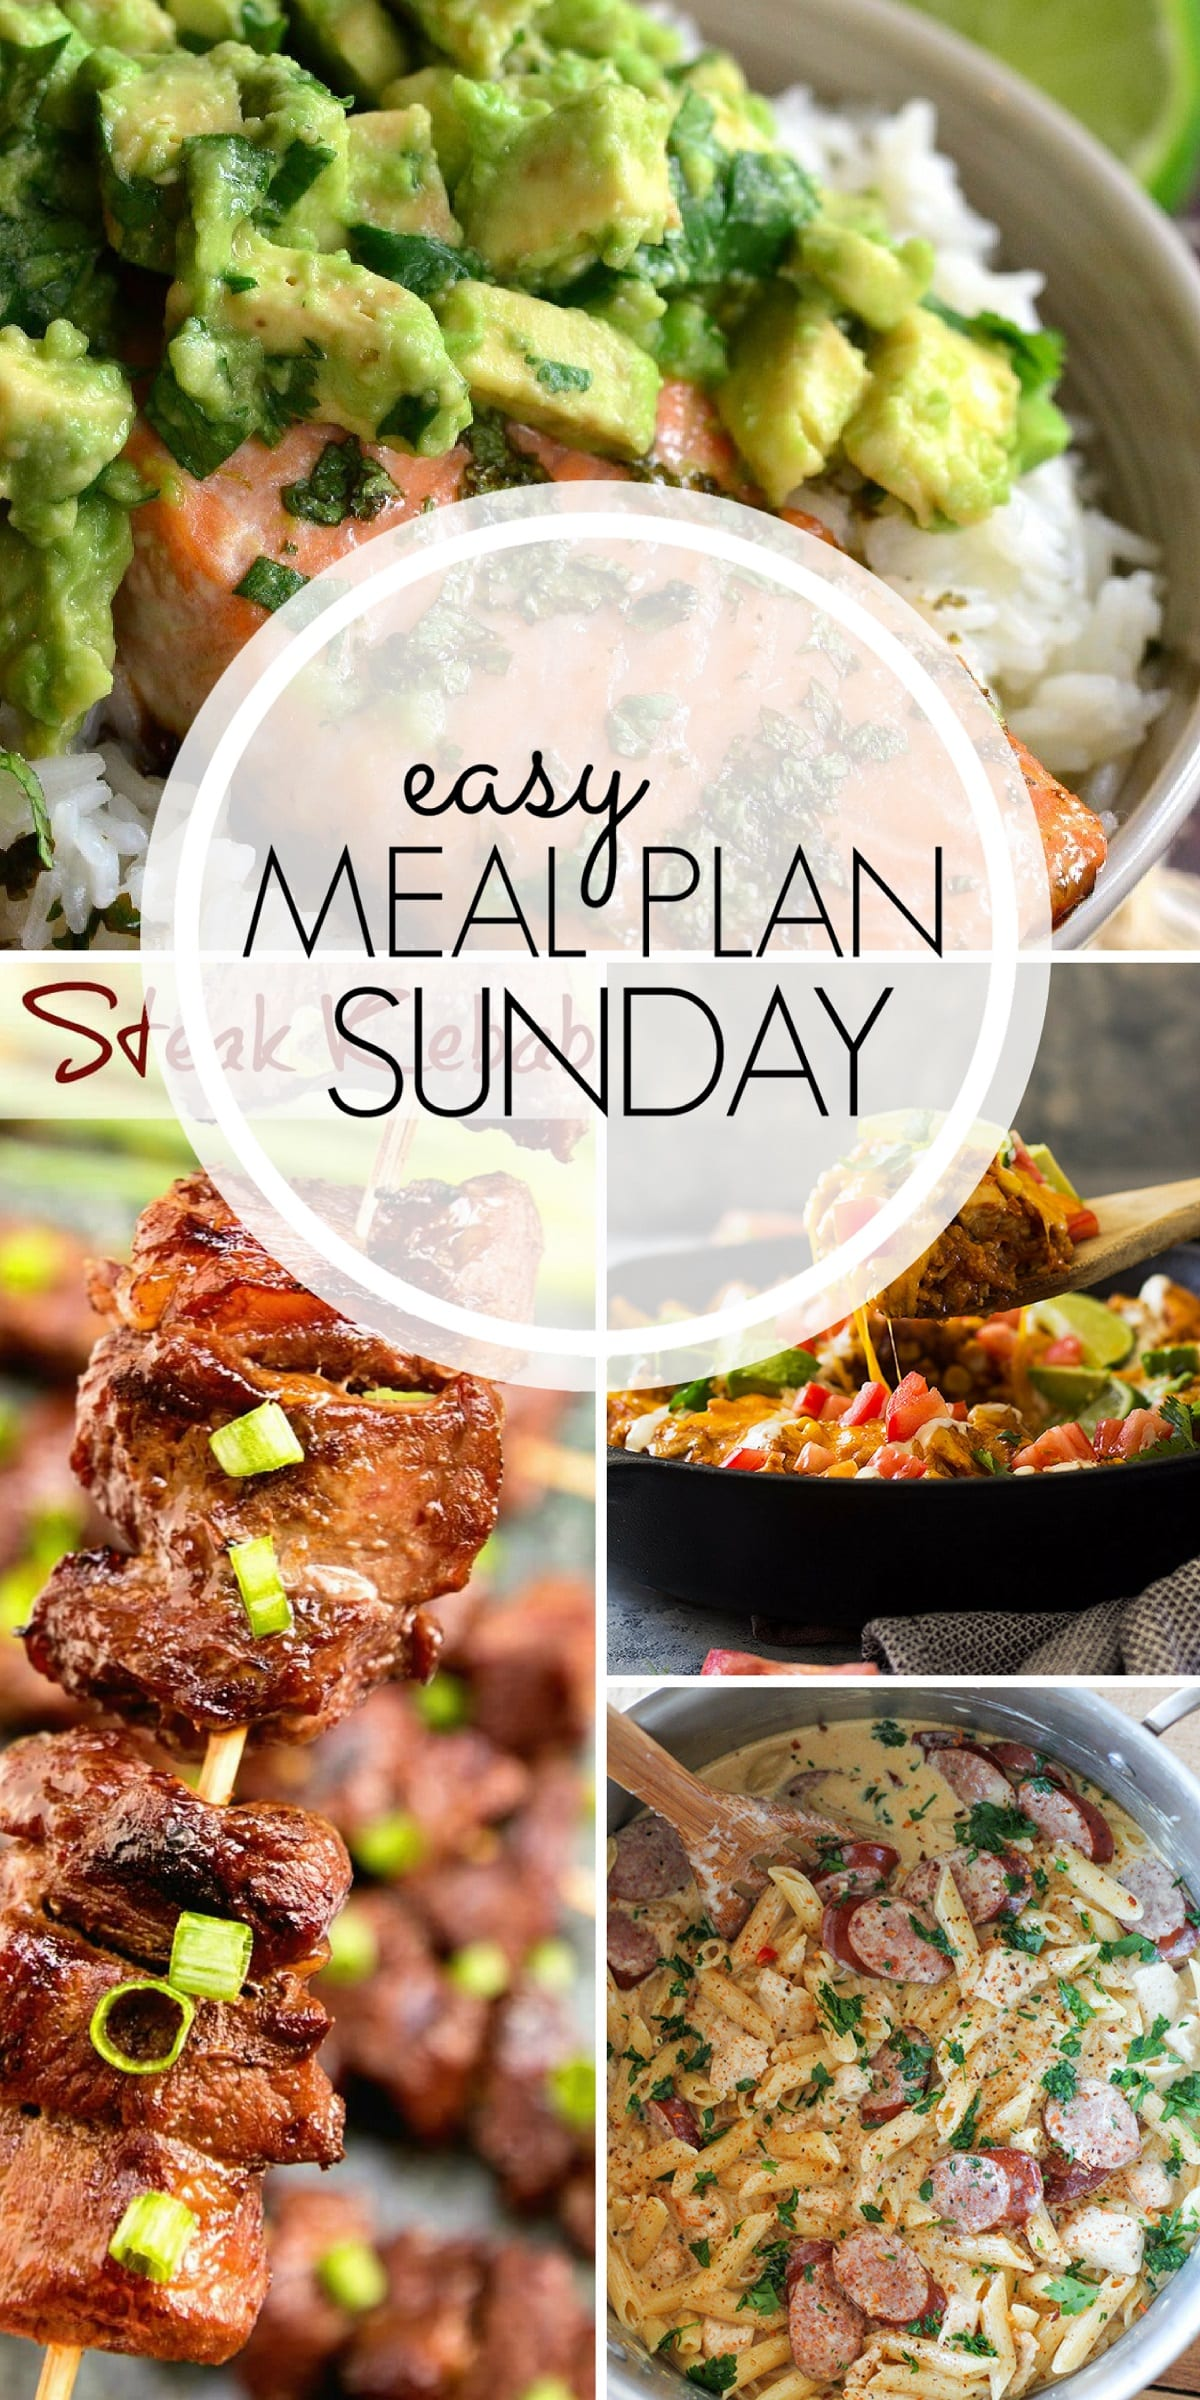 Meal Plan for the week! Enjoy these SIX meals, TWO desserts, ONE breakfast, and ONE healthy option.